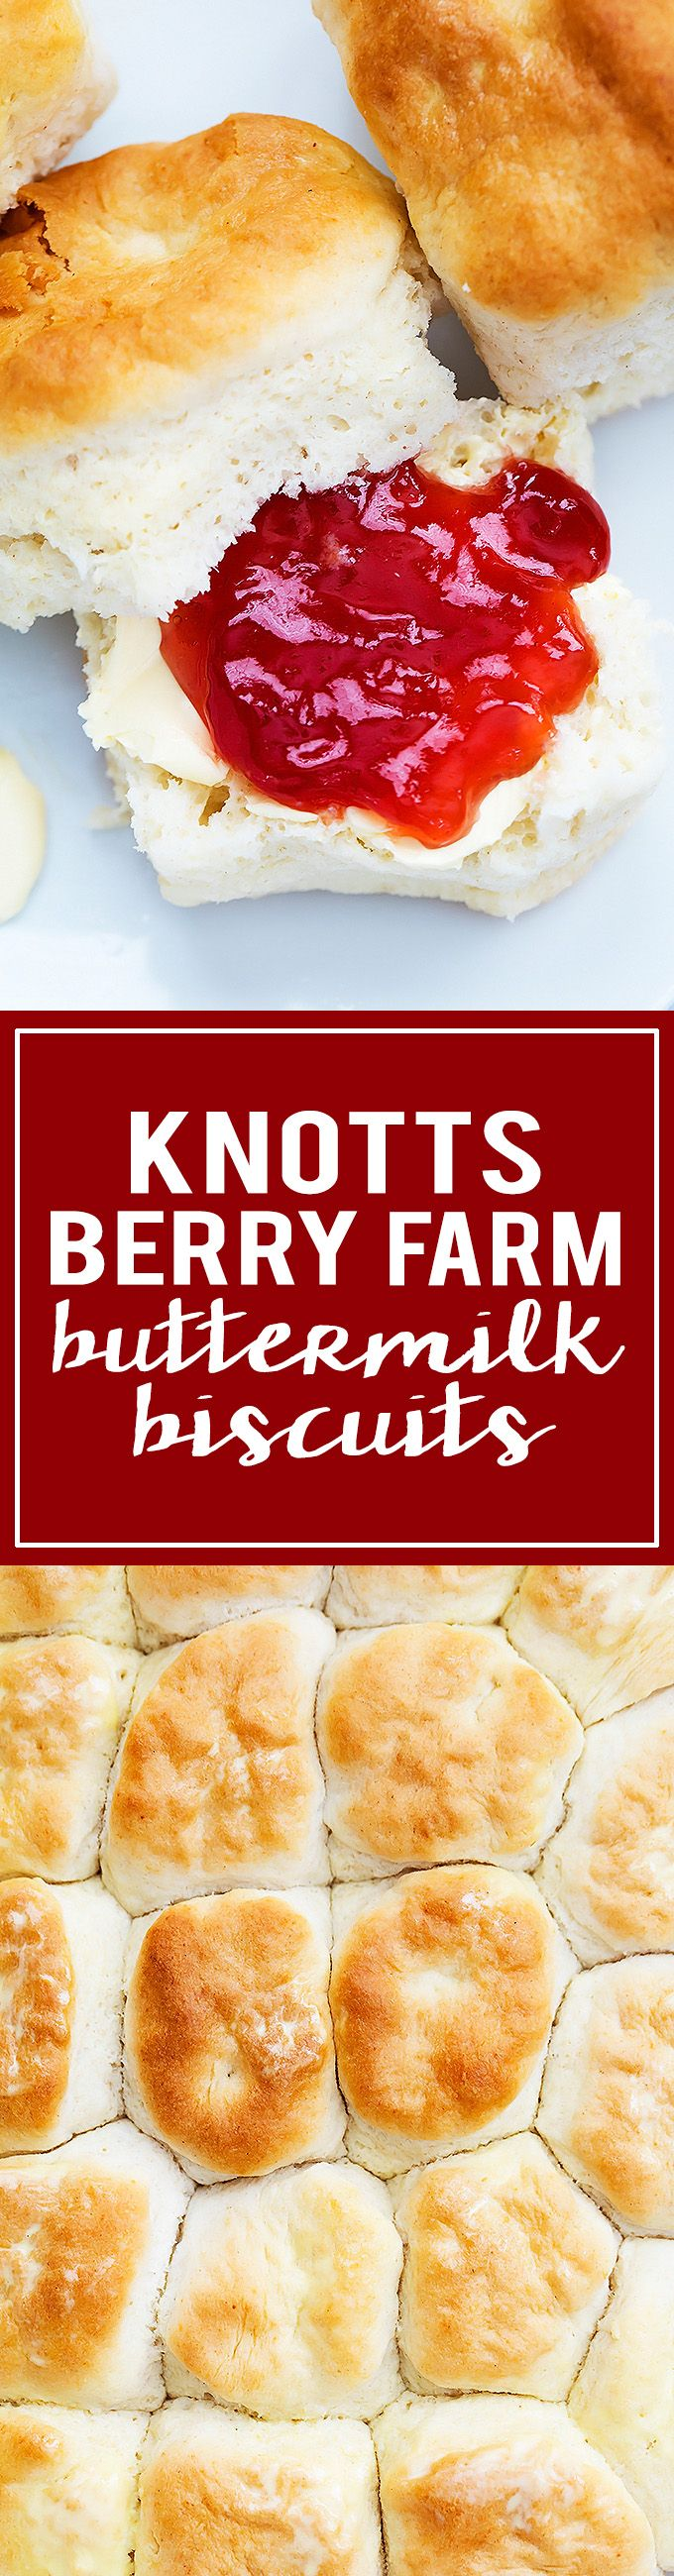 Incredibly buttery, flaky Knott's Berry Farm Buttermilk Biscuits - so easy to make!   Creme de la Crumb